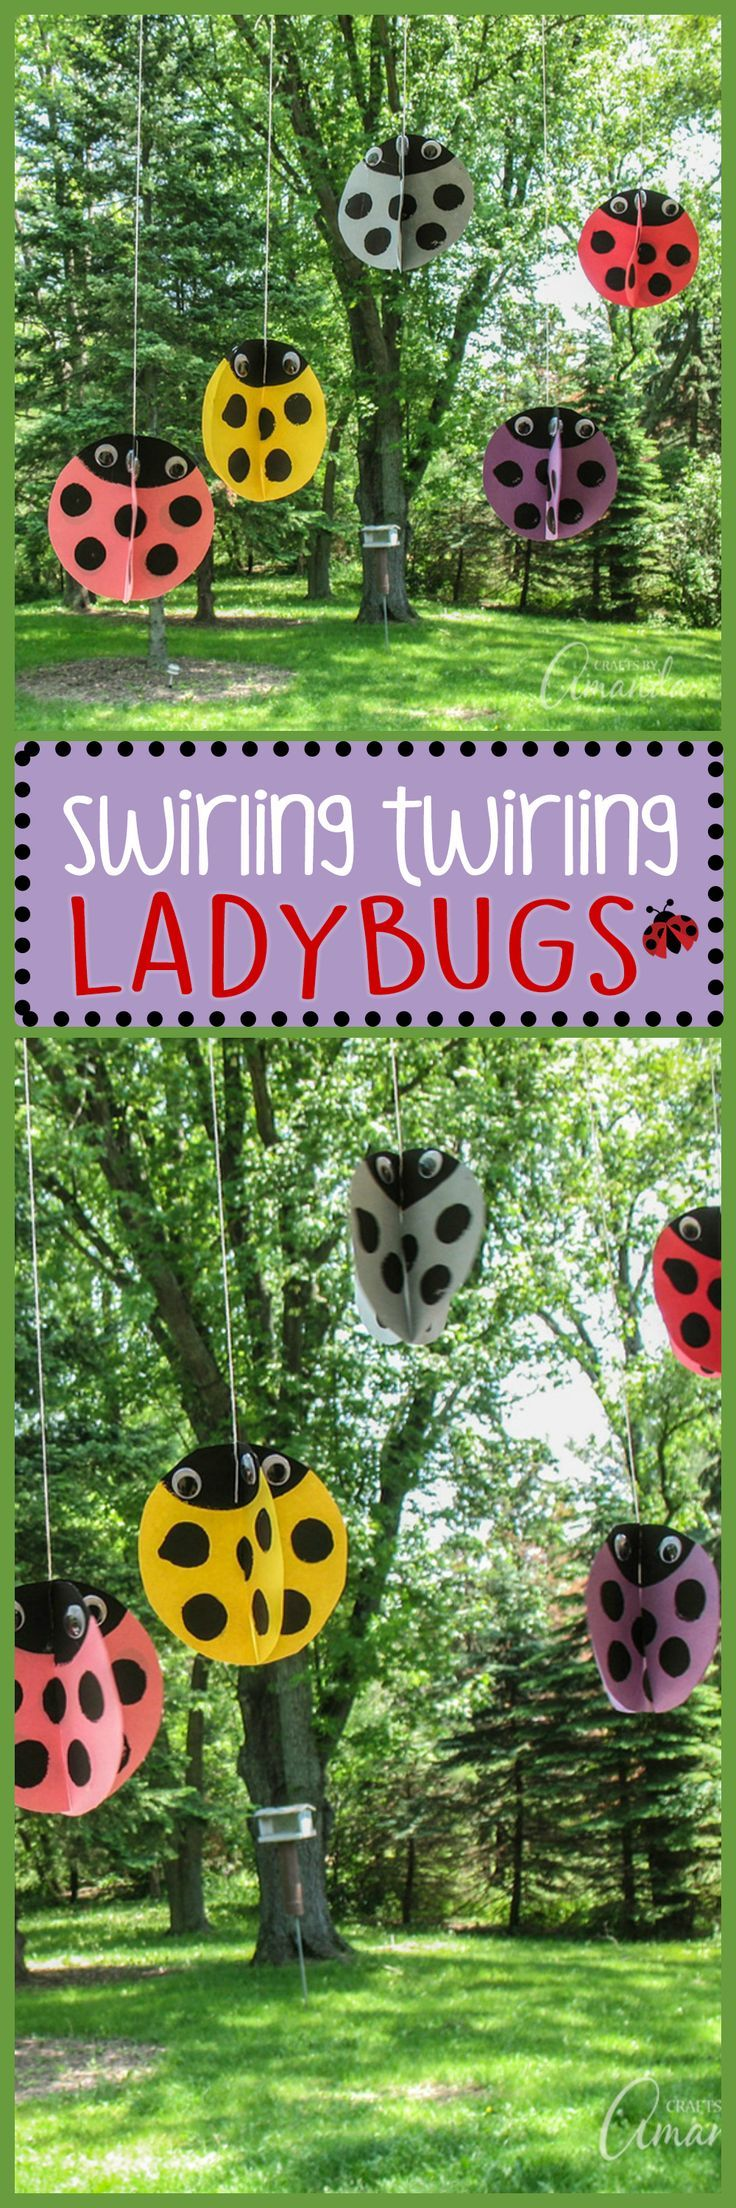 These adorable twirling ladybugs are a great summer kids craft! These ladybugs are easy to make and look so cute swirling and